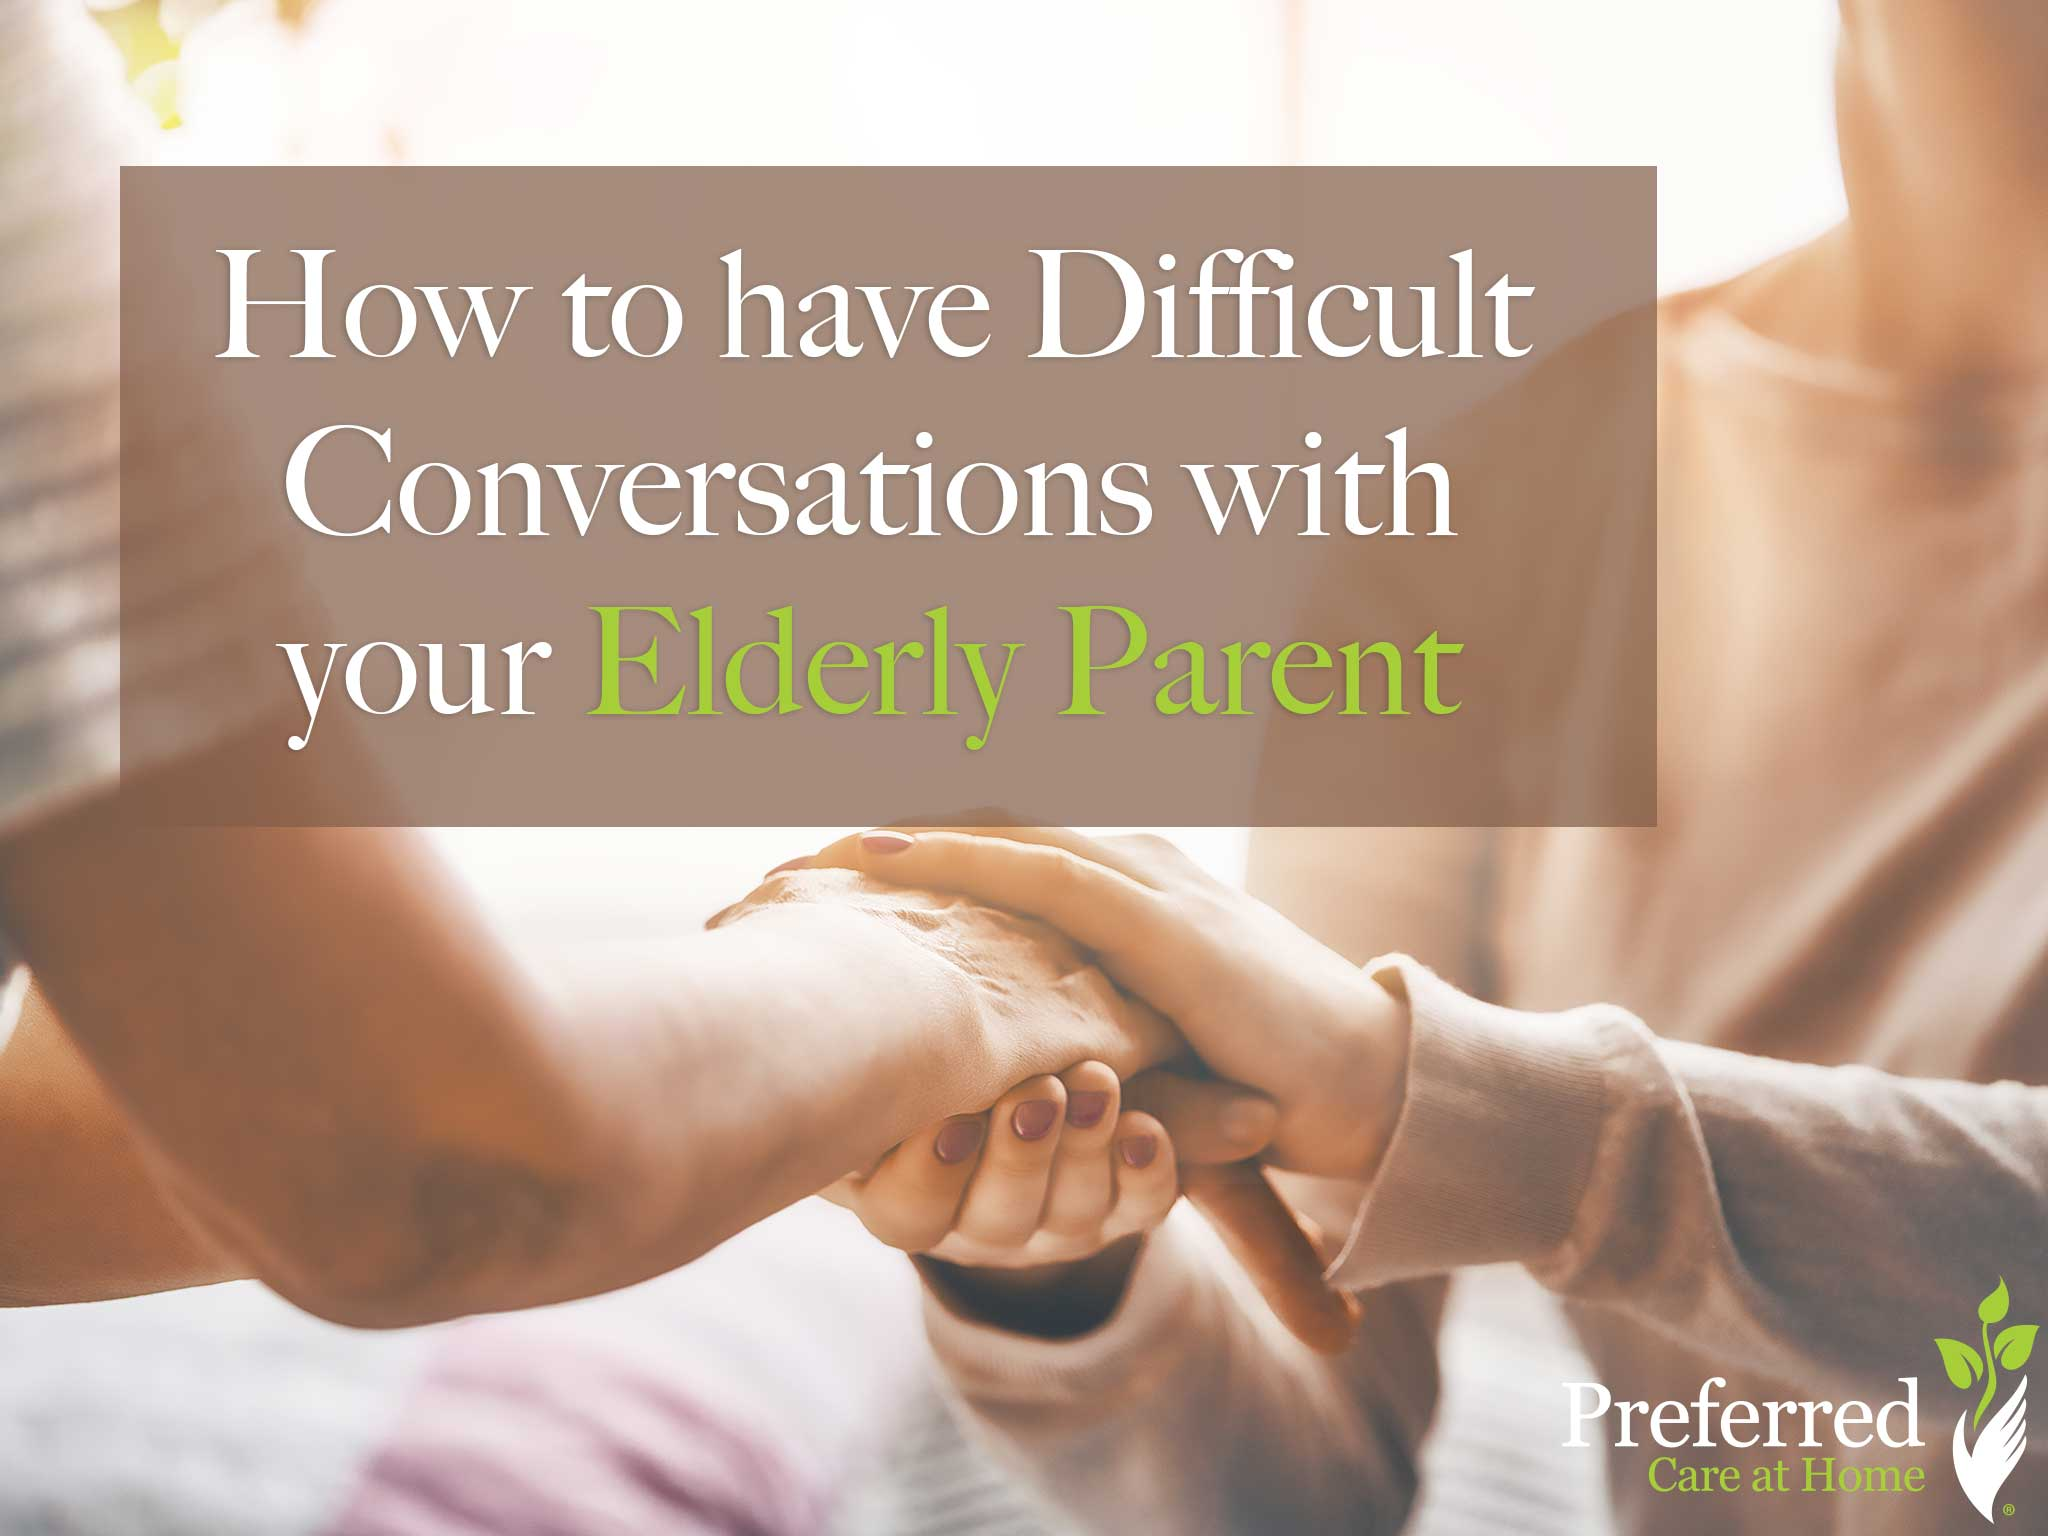 How to Have Difficult Conversations with Your Elderly Parent